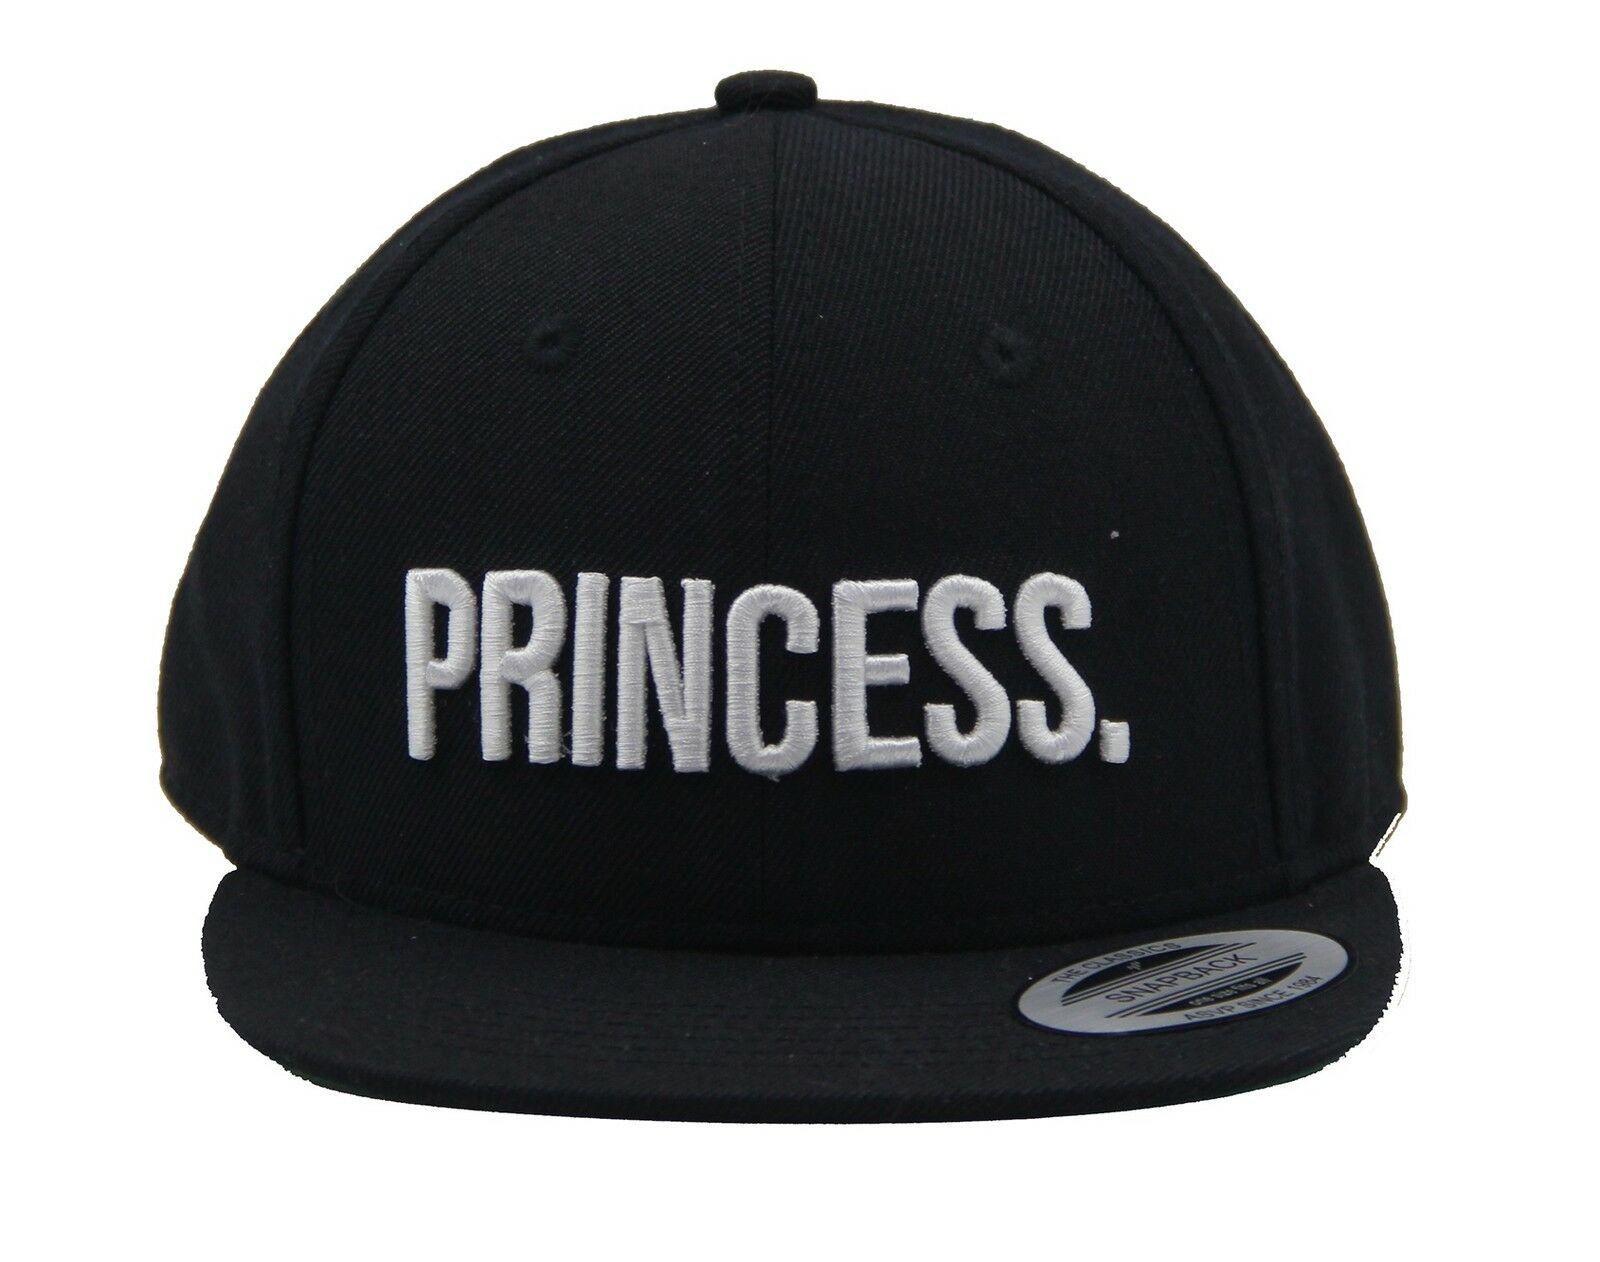 450b79dad2e4c7 ASVP Shop® Snapback Cap with Embroidered Princess Text & Stylish Design in  Black